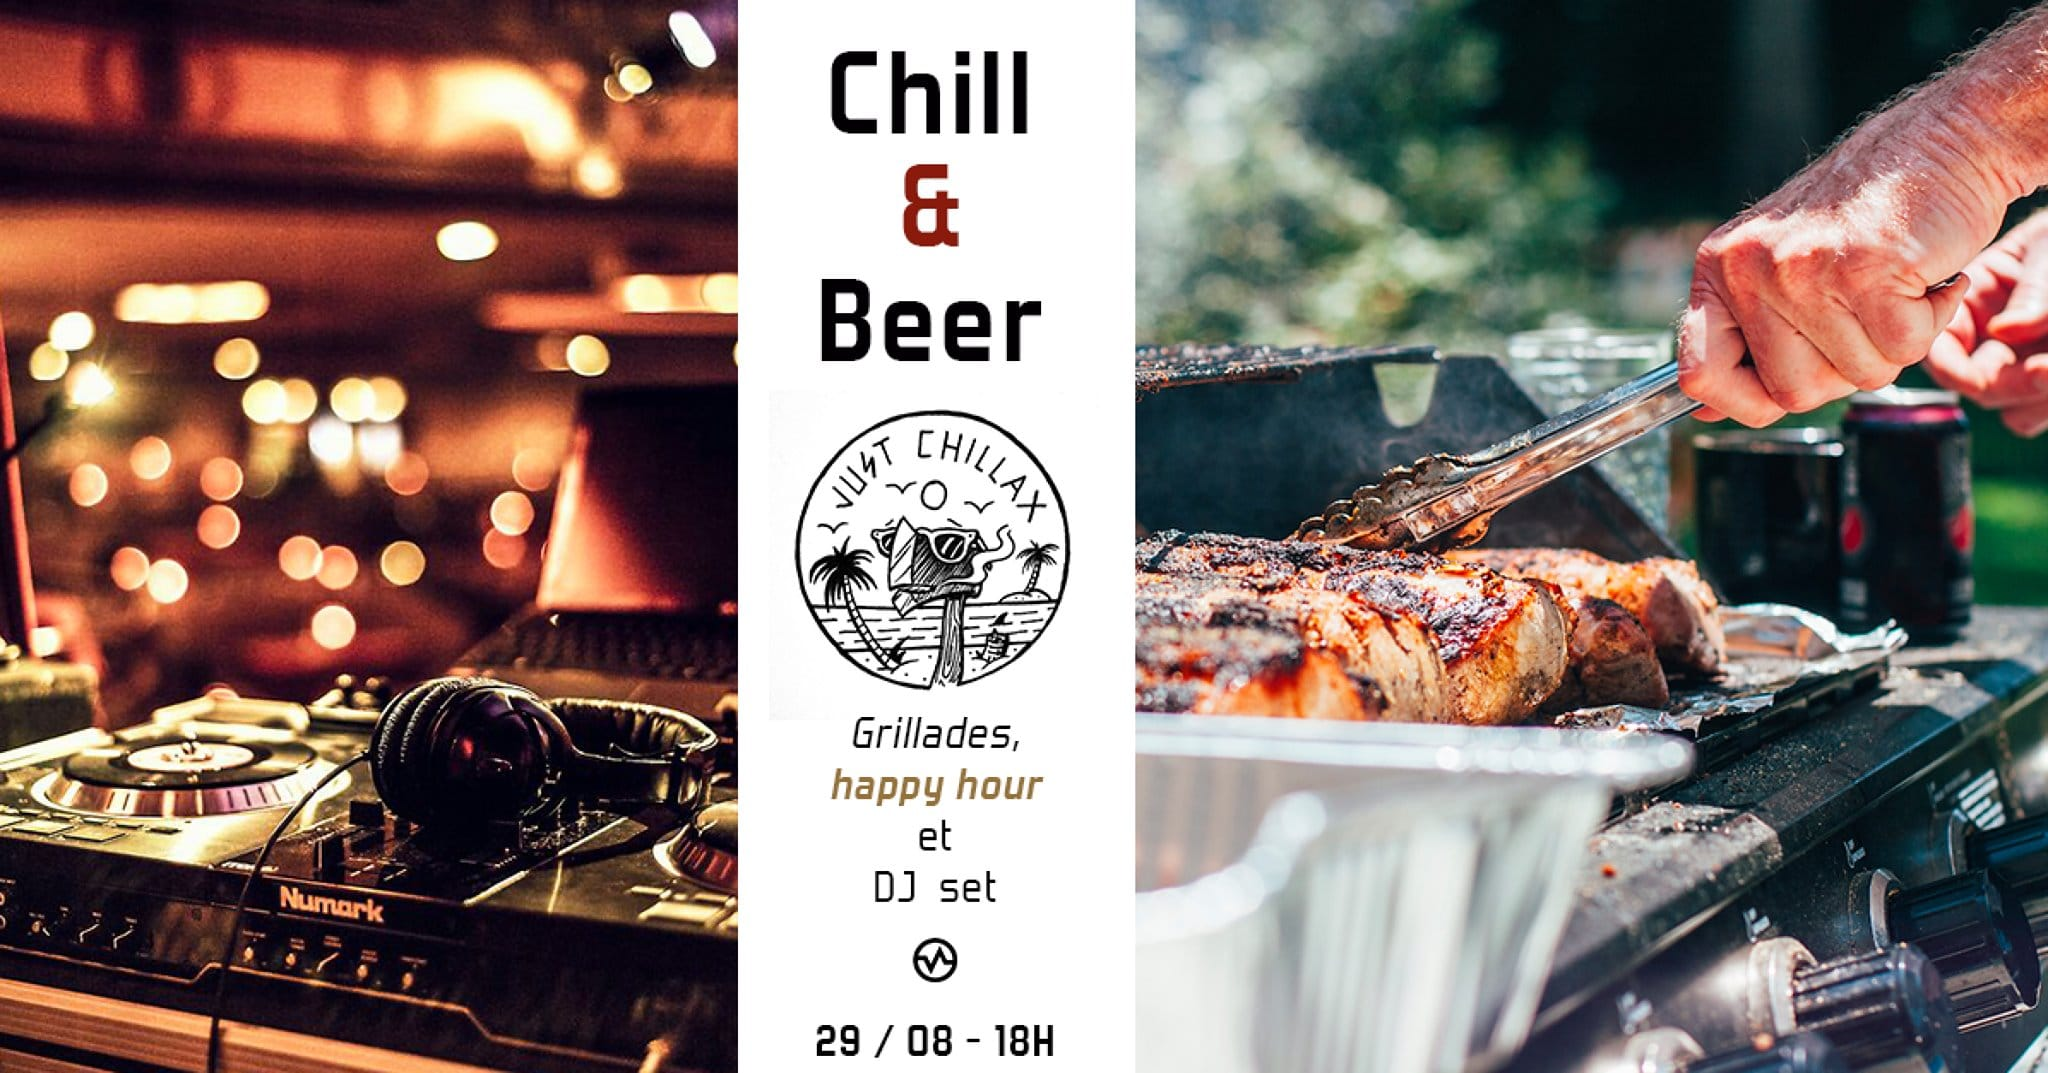 chill & beer - Vertical'Art Nantes - salle d'escalade de bloc - restaurant et bar - DJ set - Barbecue - soirée - news - bières - happy hour